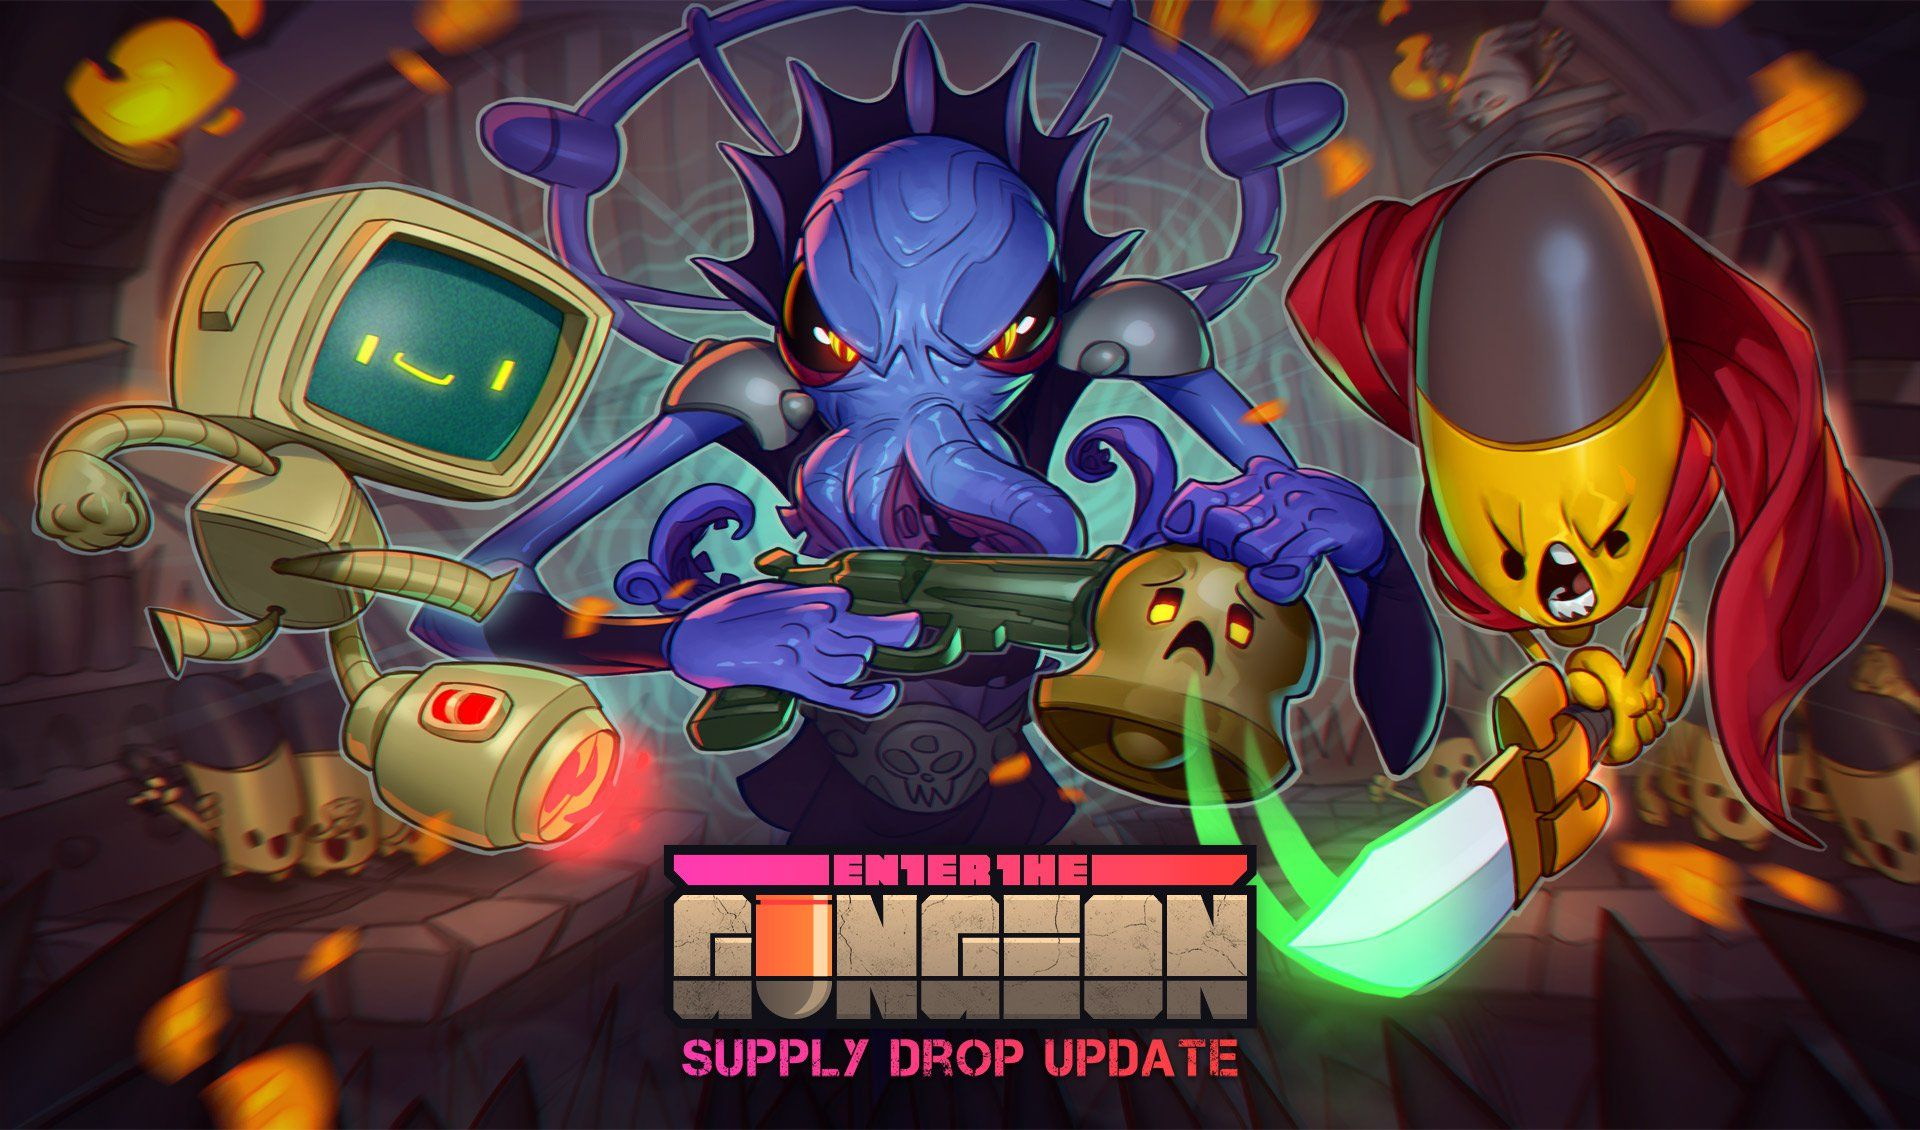 Enter The Gungeon S Free Supply Drop Update Should Bring Me Back In I Got Burned Out By The Progression Loop Of Ente Free Supplies Max Grecke 2017 Wallpaper